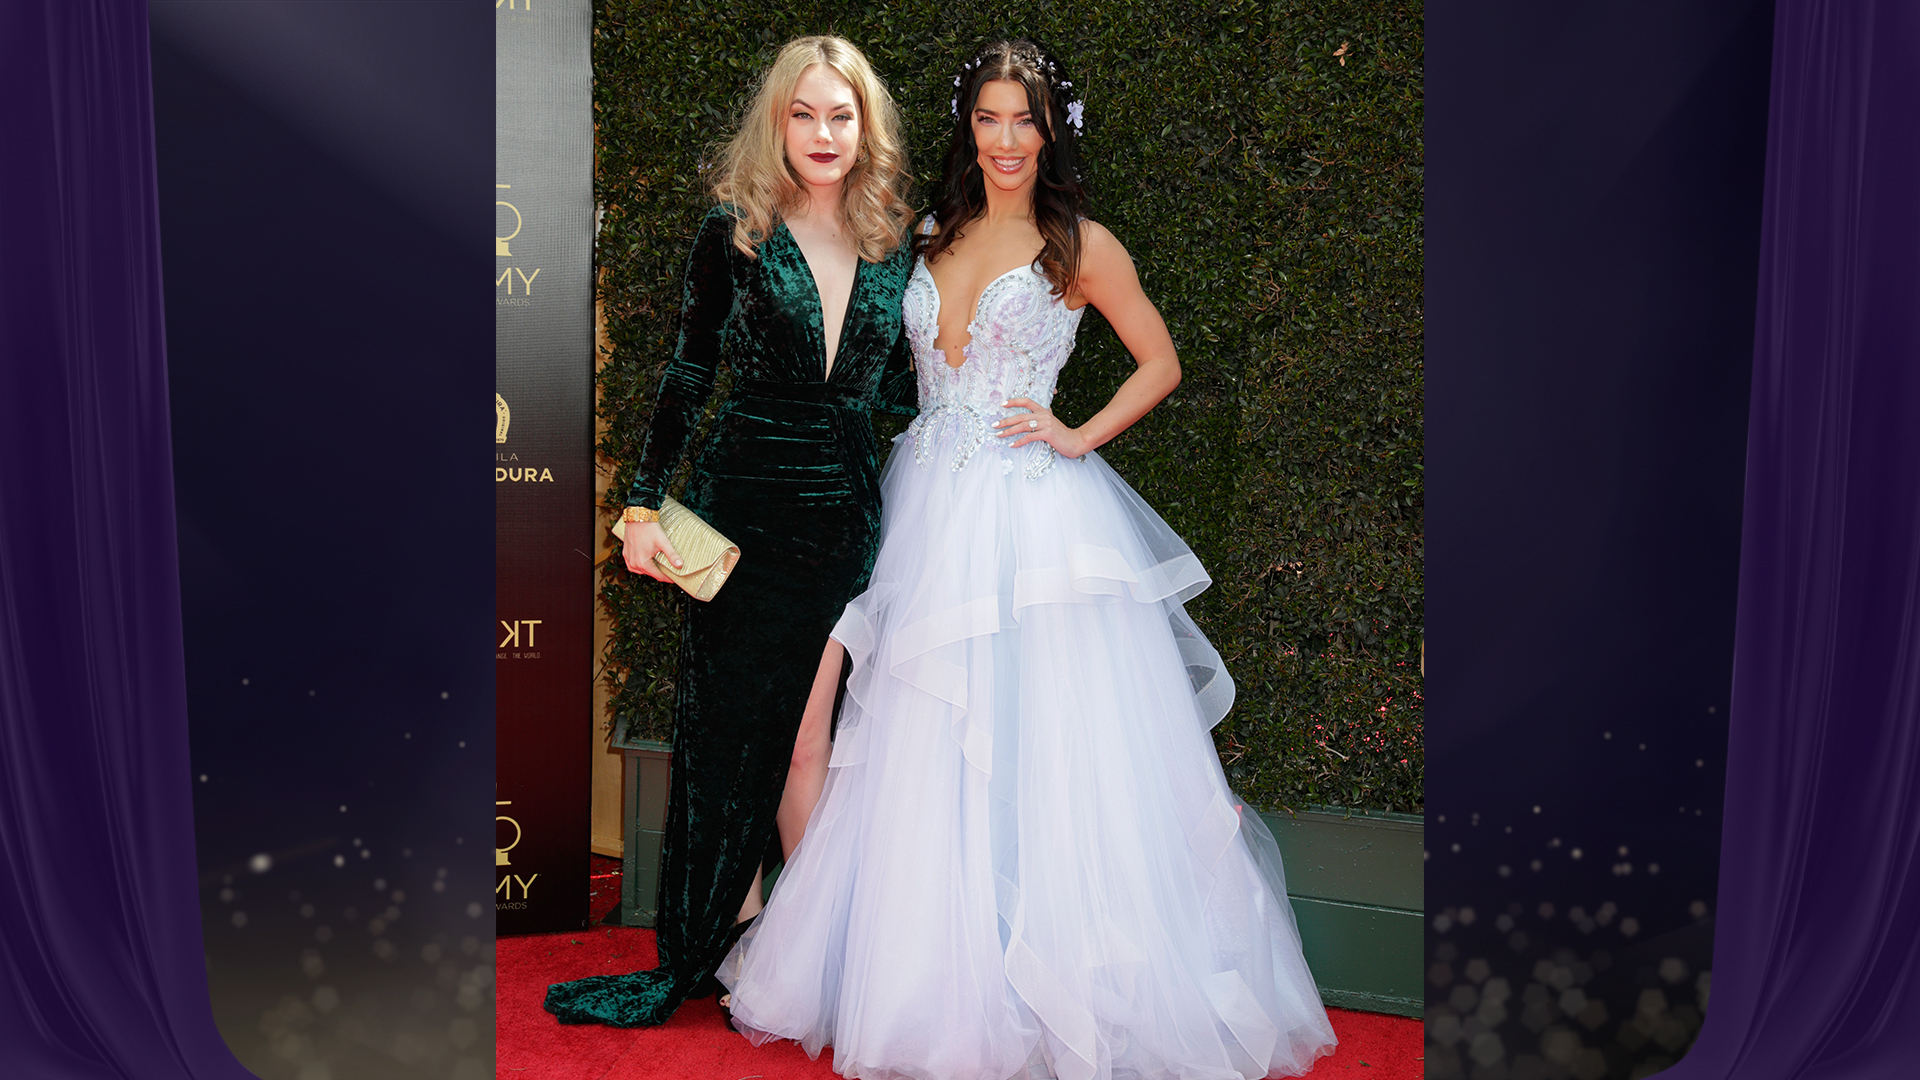 Annika Noelle and Jacqueline MacInnes Wood from The Bold and the Beautiful snap a photo together before the 2018 Daytime Emmy Awards.